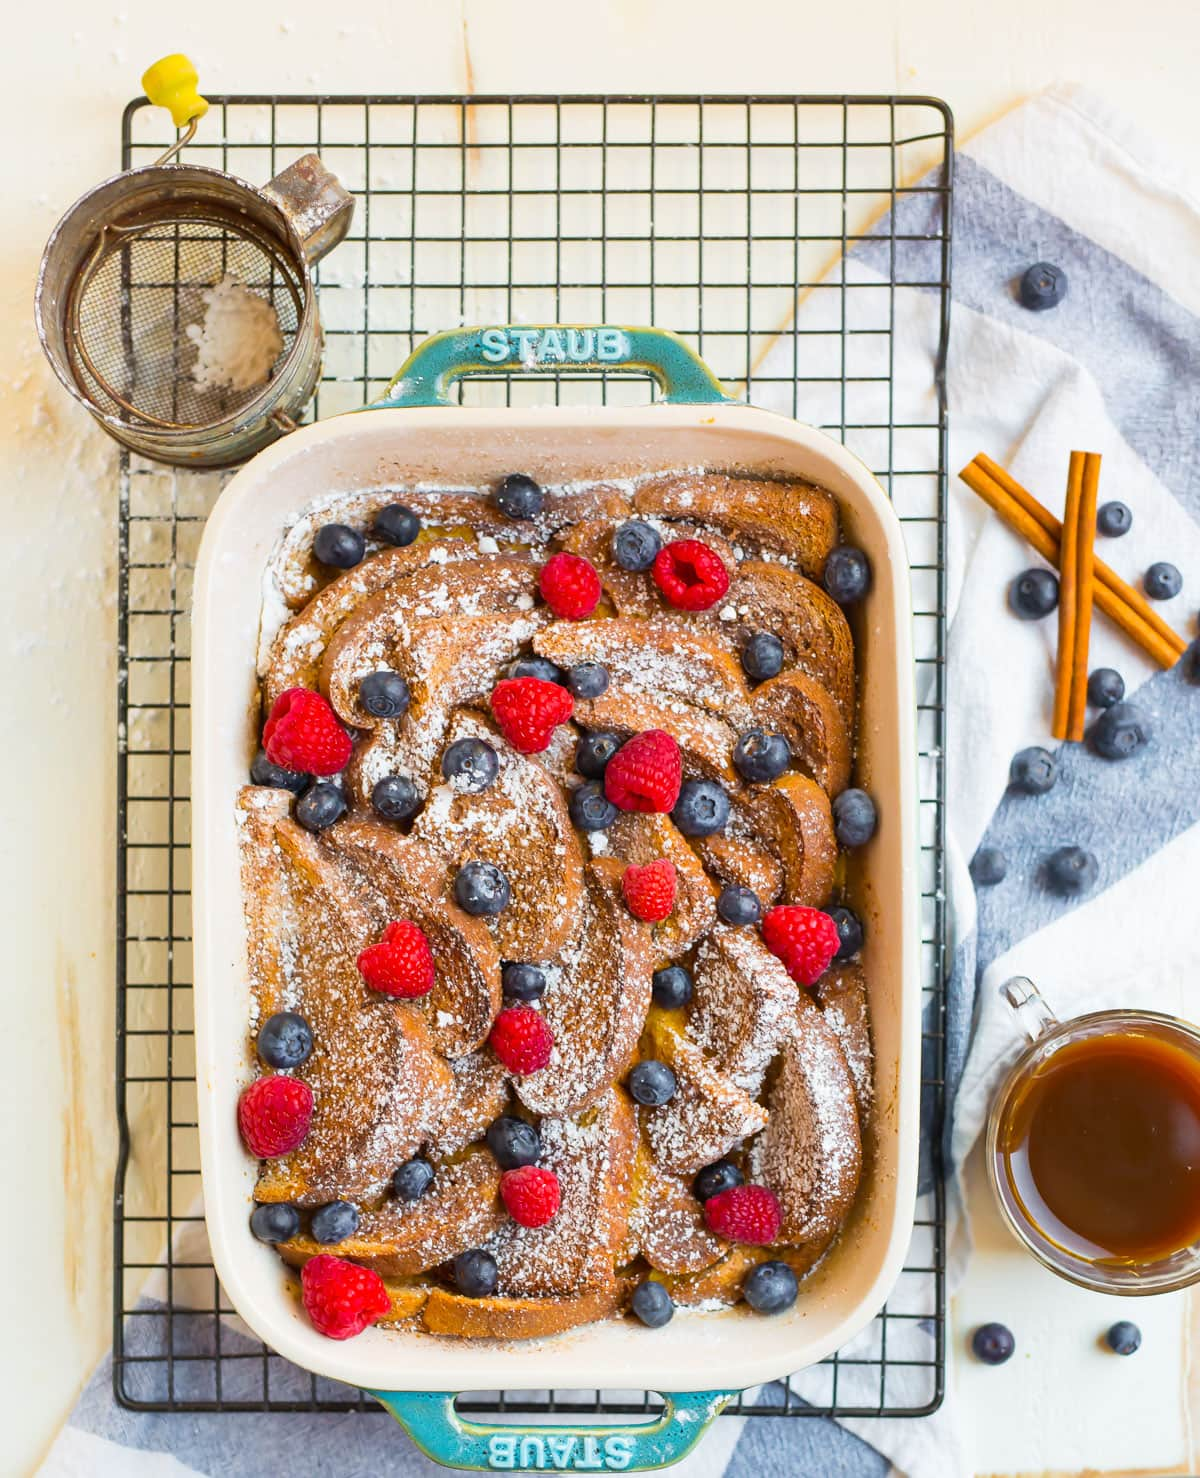 A pan of French toast casserole sprinkled with powdered sugar